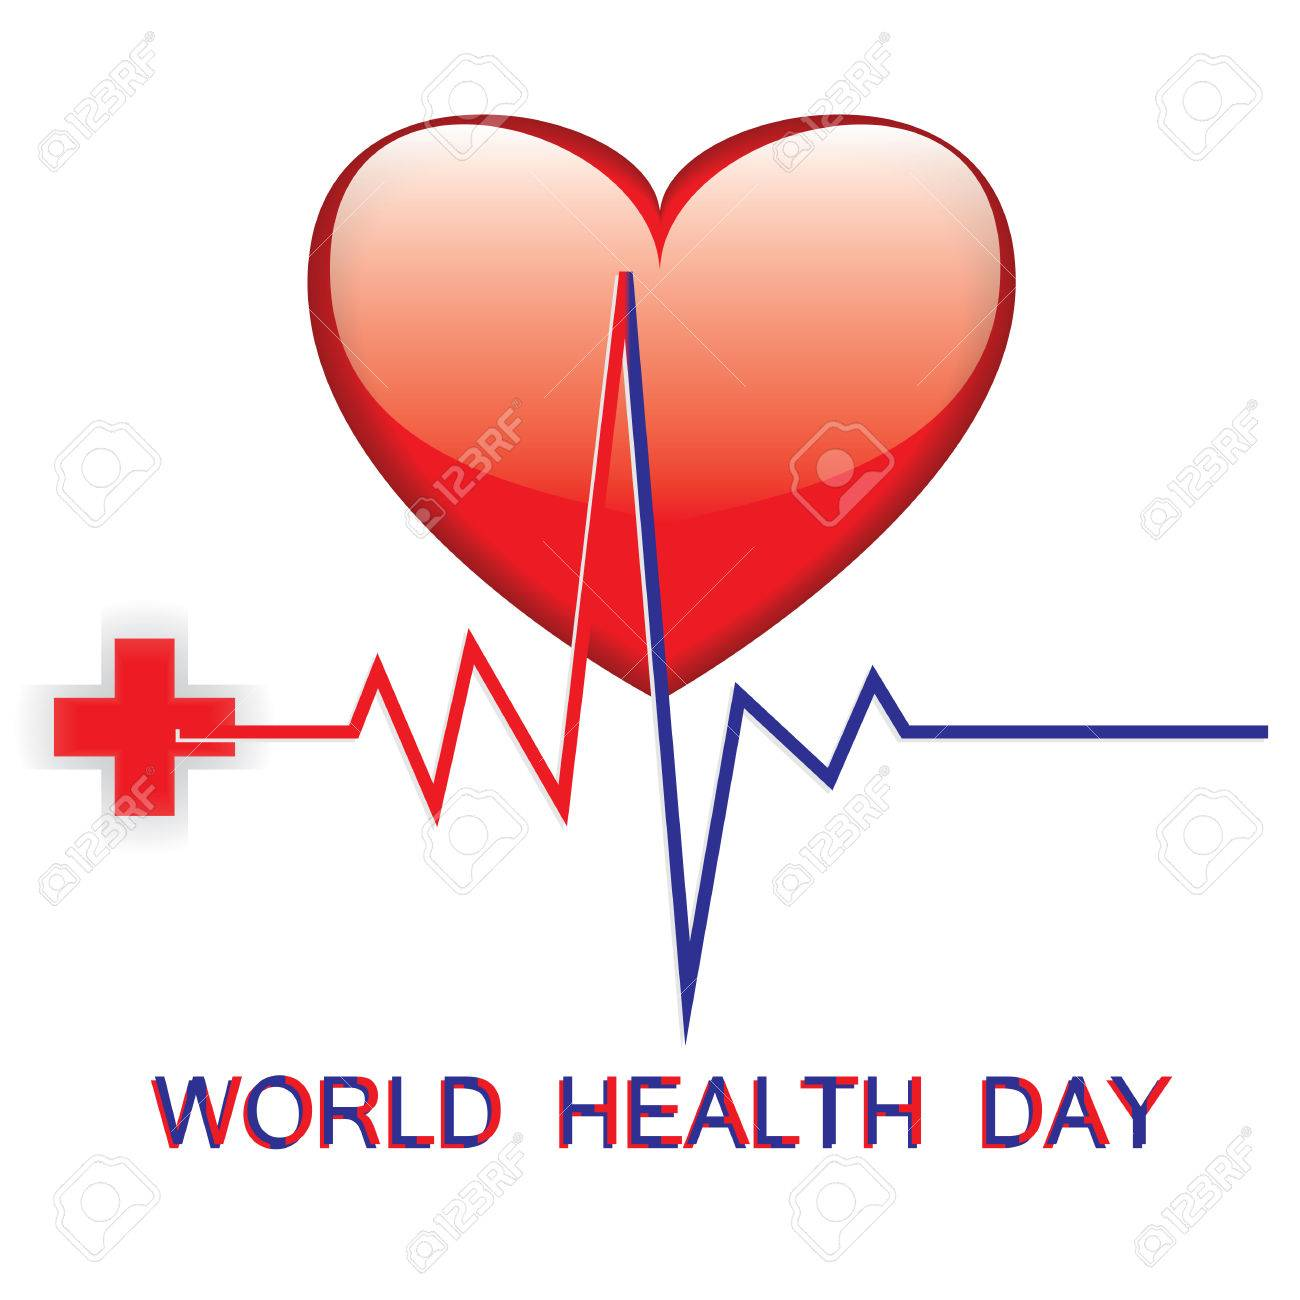 World health day medical red cross big heart emblem cardiogram world health day medical red cross big heart emblem cardiogram art creative modern illustration vector white biocorpaavc Images